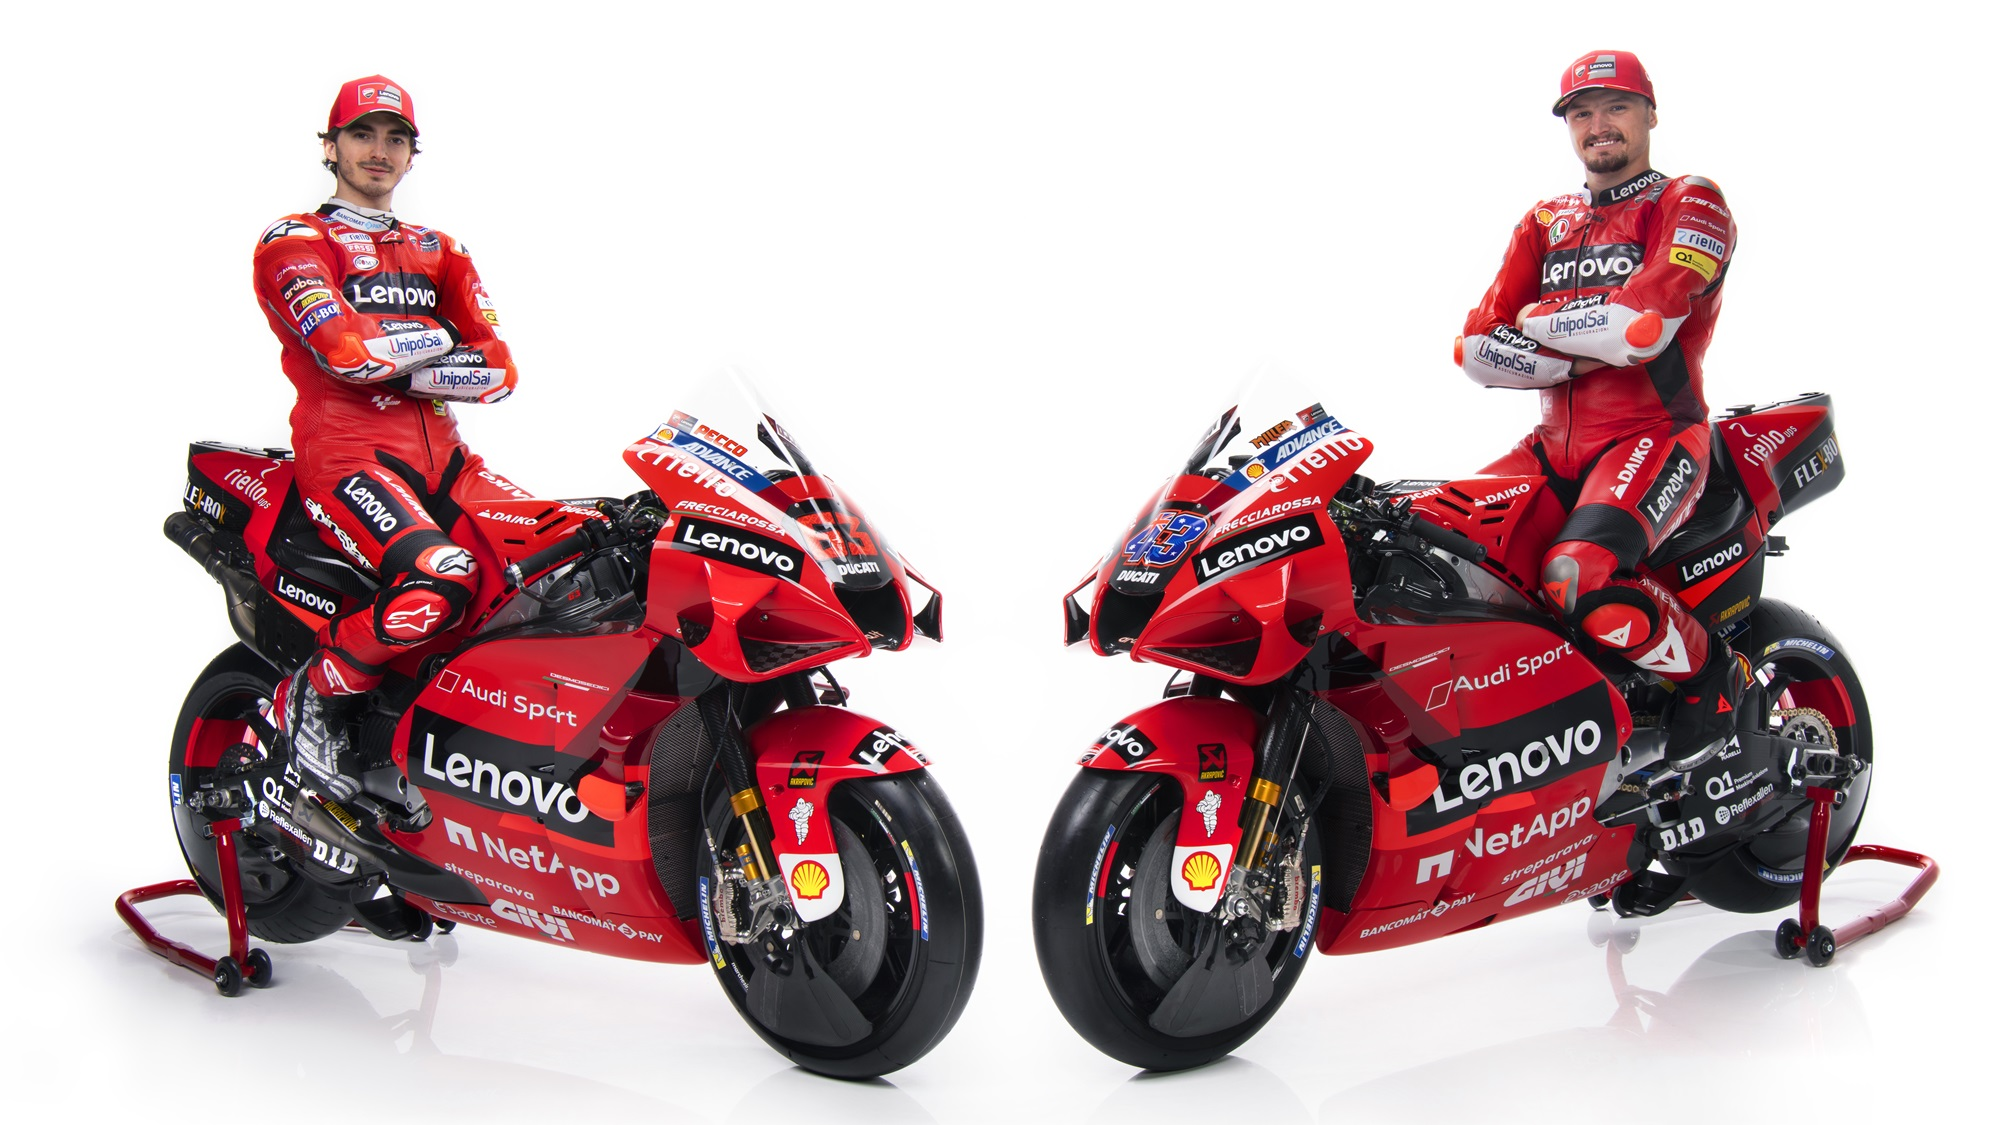 Miller and Bagnaia Ducati MotoGP team 2021